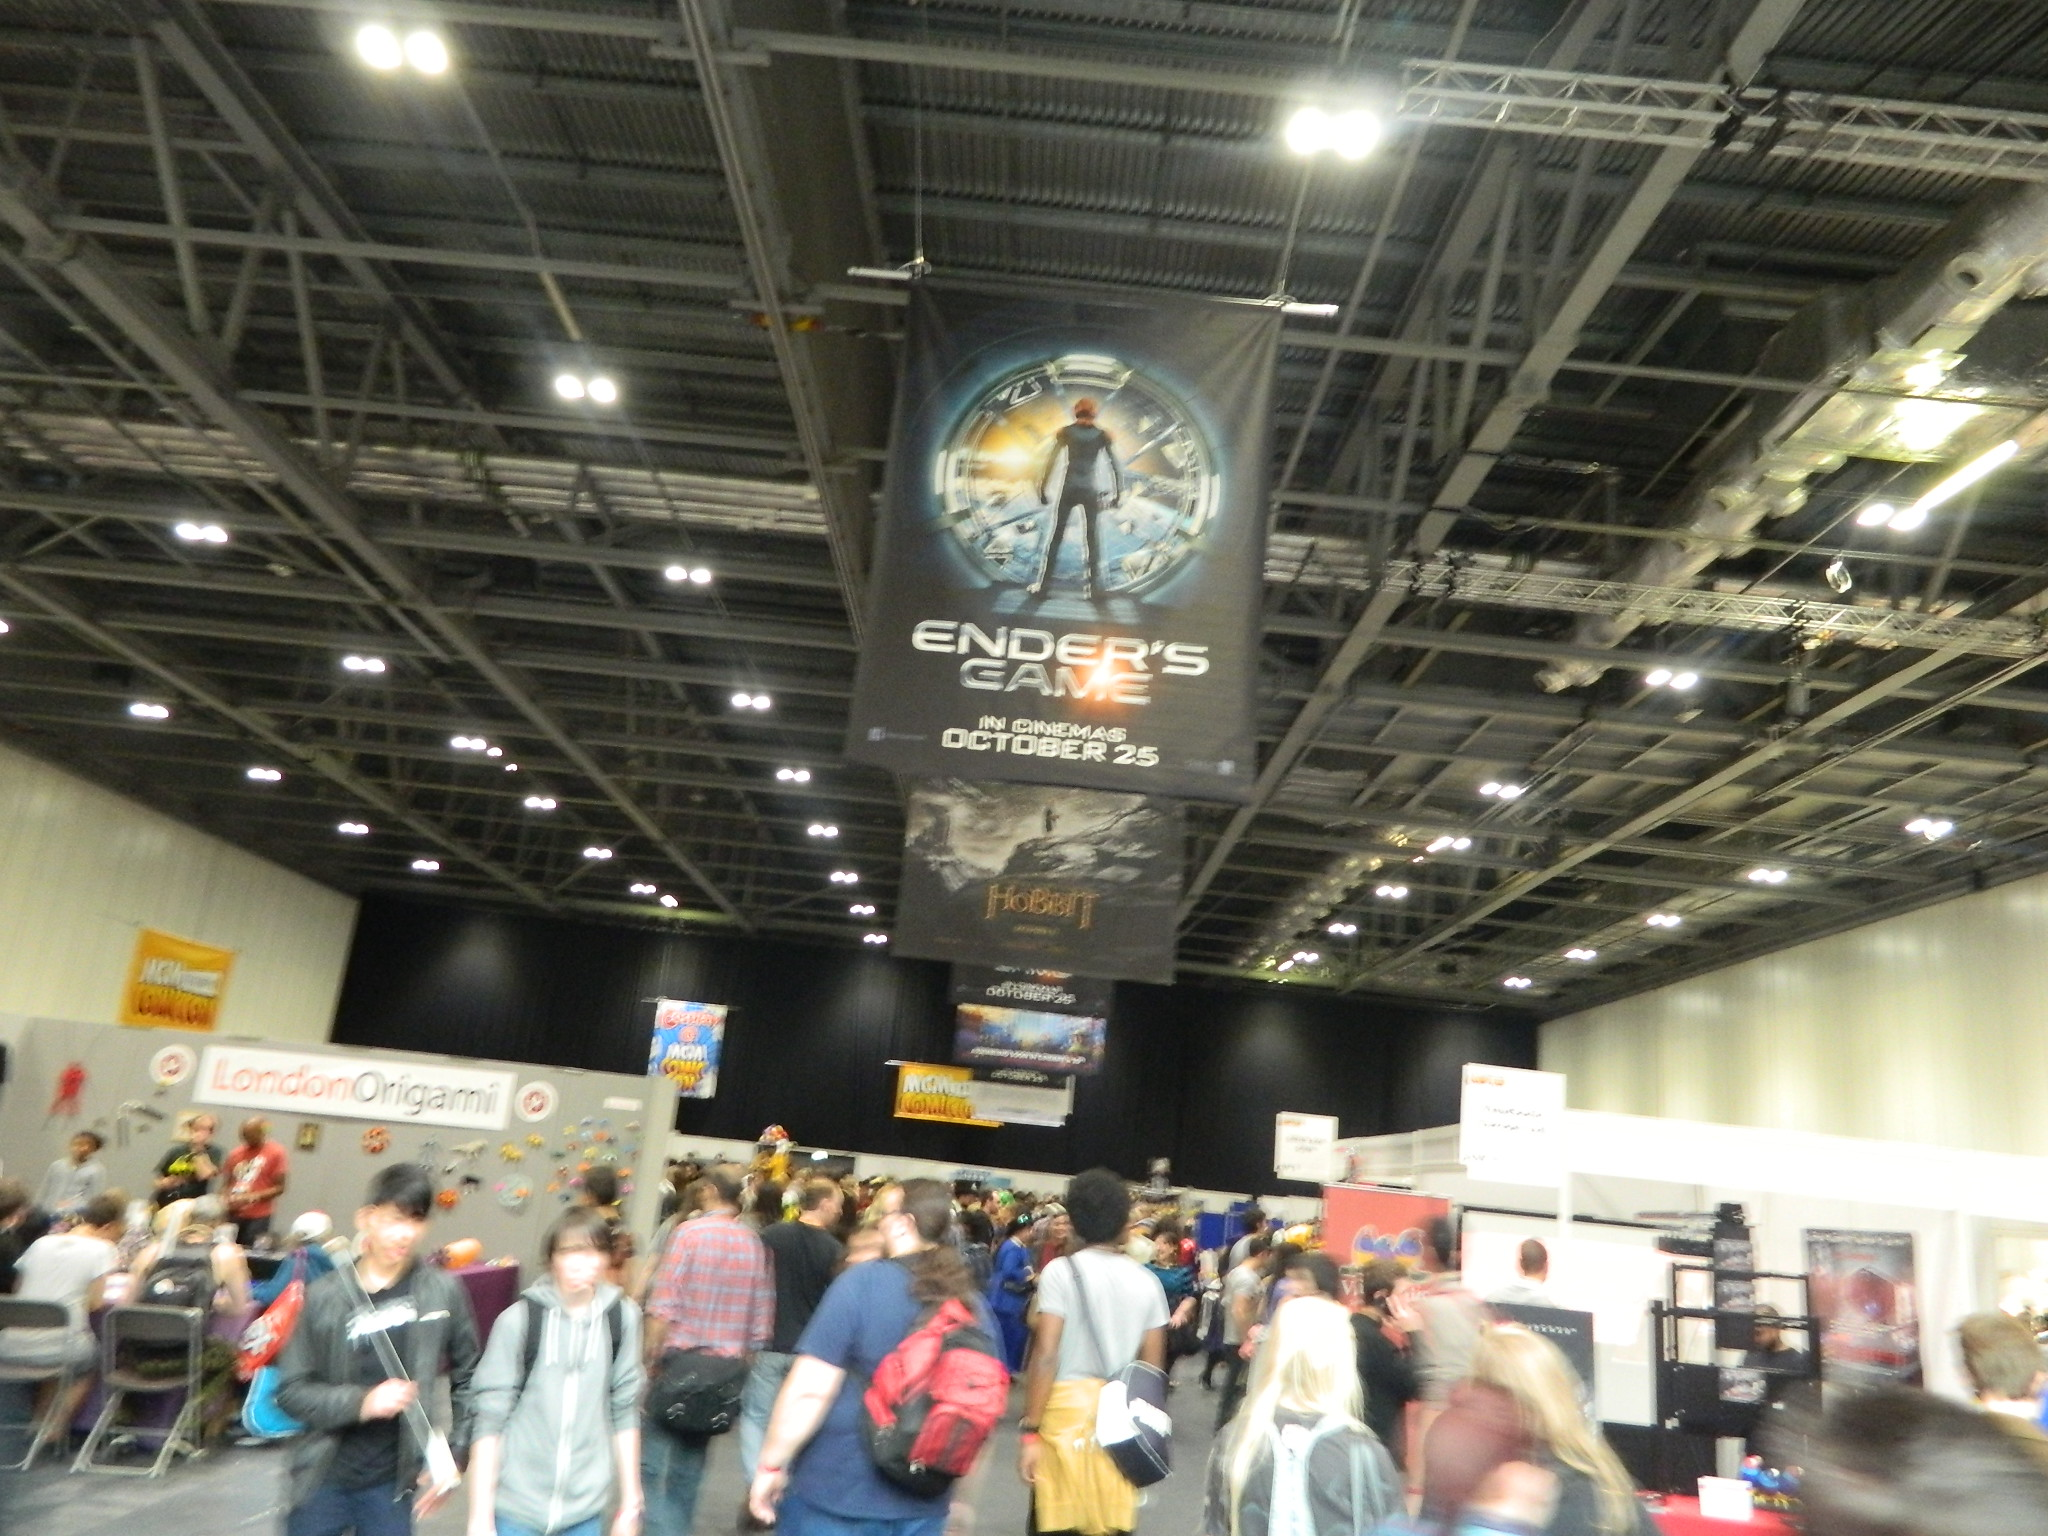 Mcm Expo Stands For : Mcm london expo comic con th excel